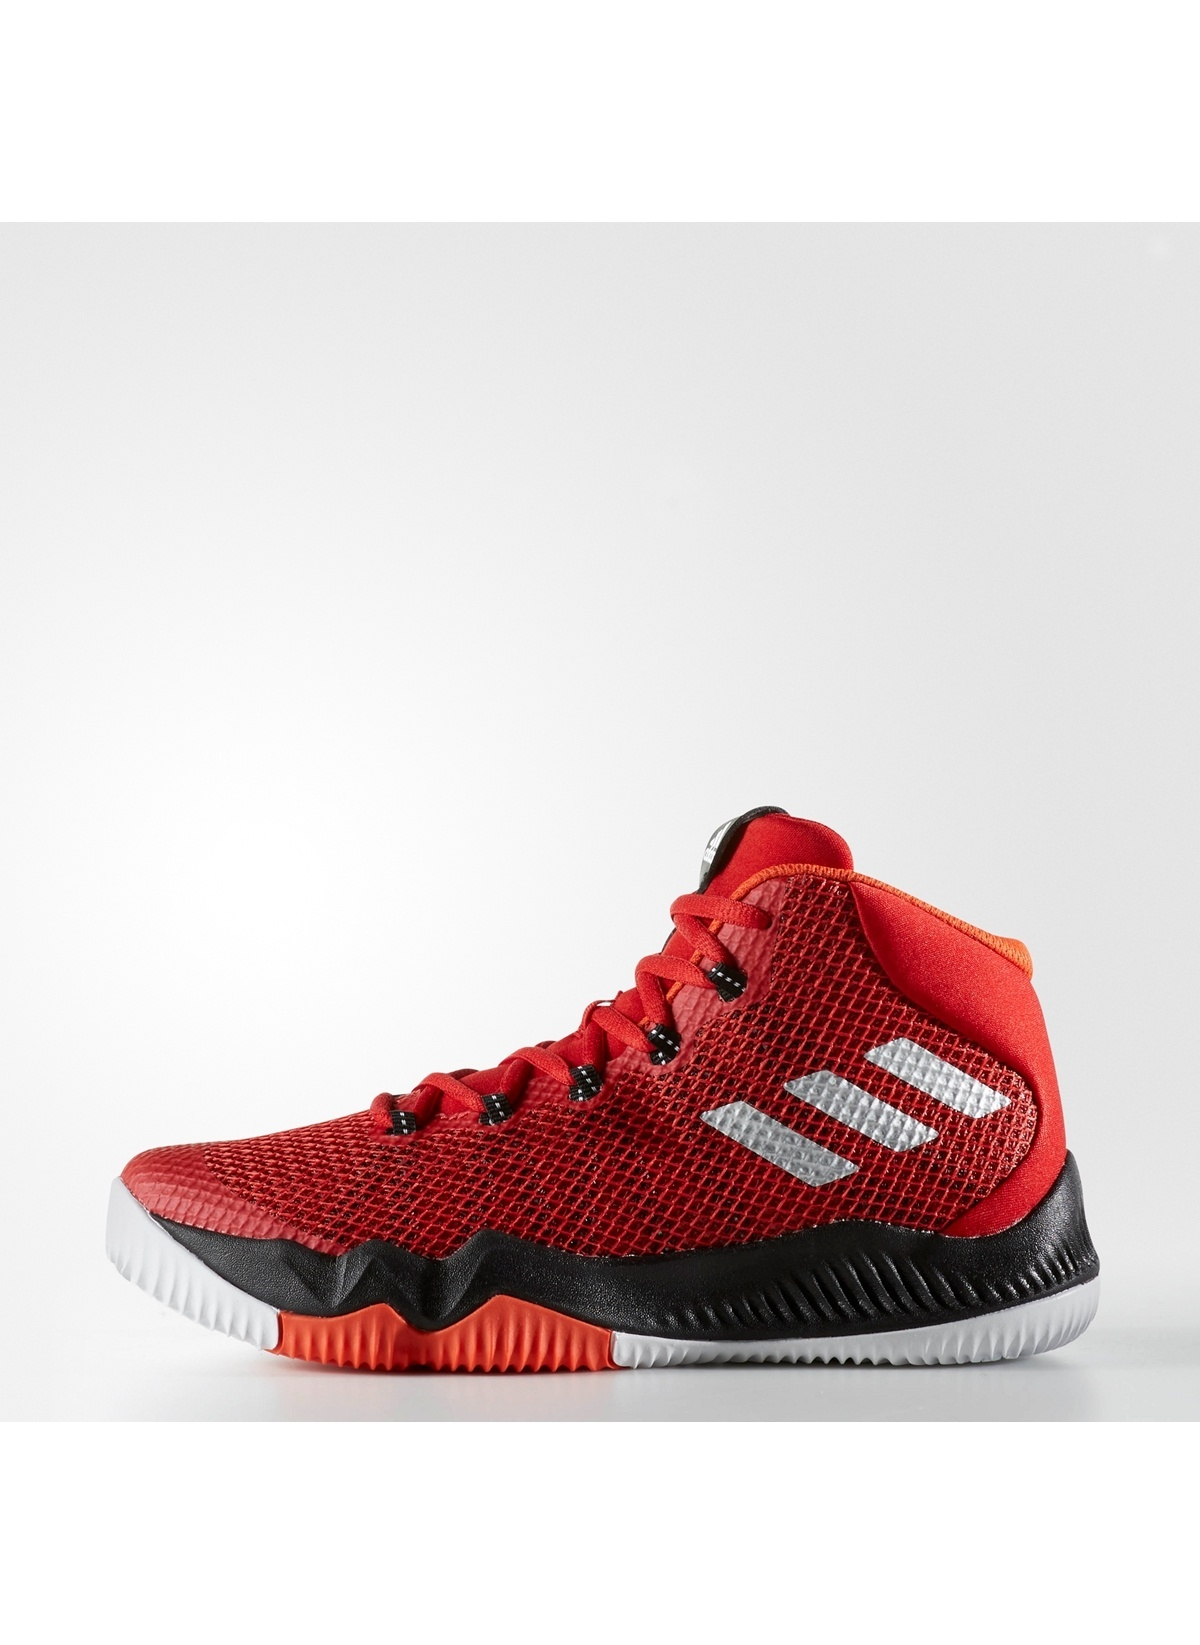 reputable site 4bb9e 5ab46 ... adidas Crazy Hustle Bordo ...